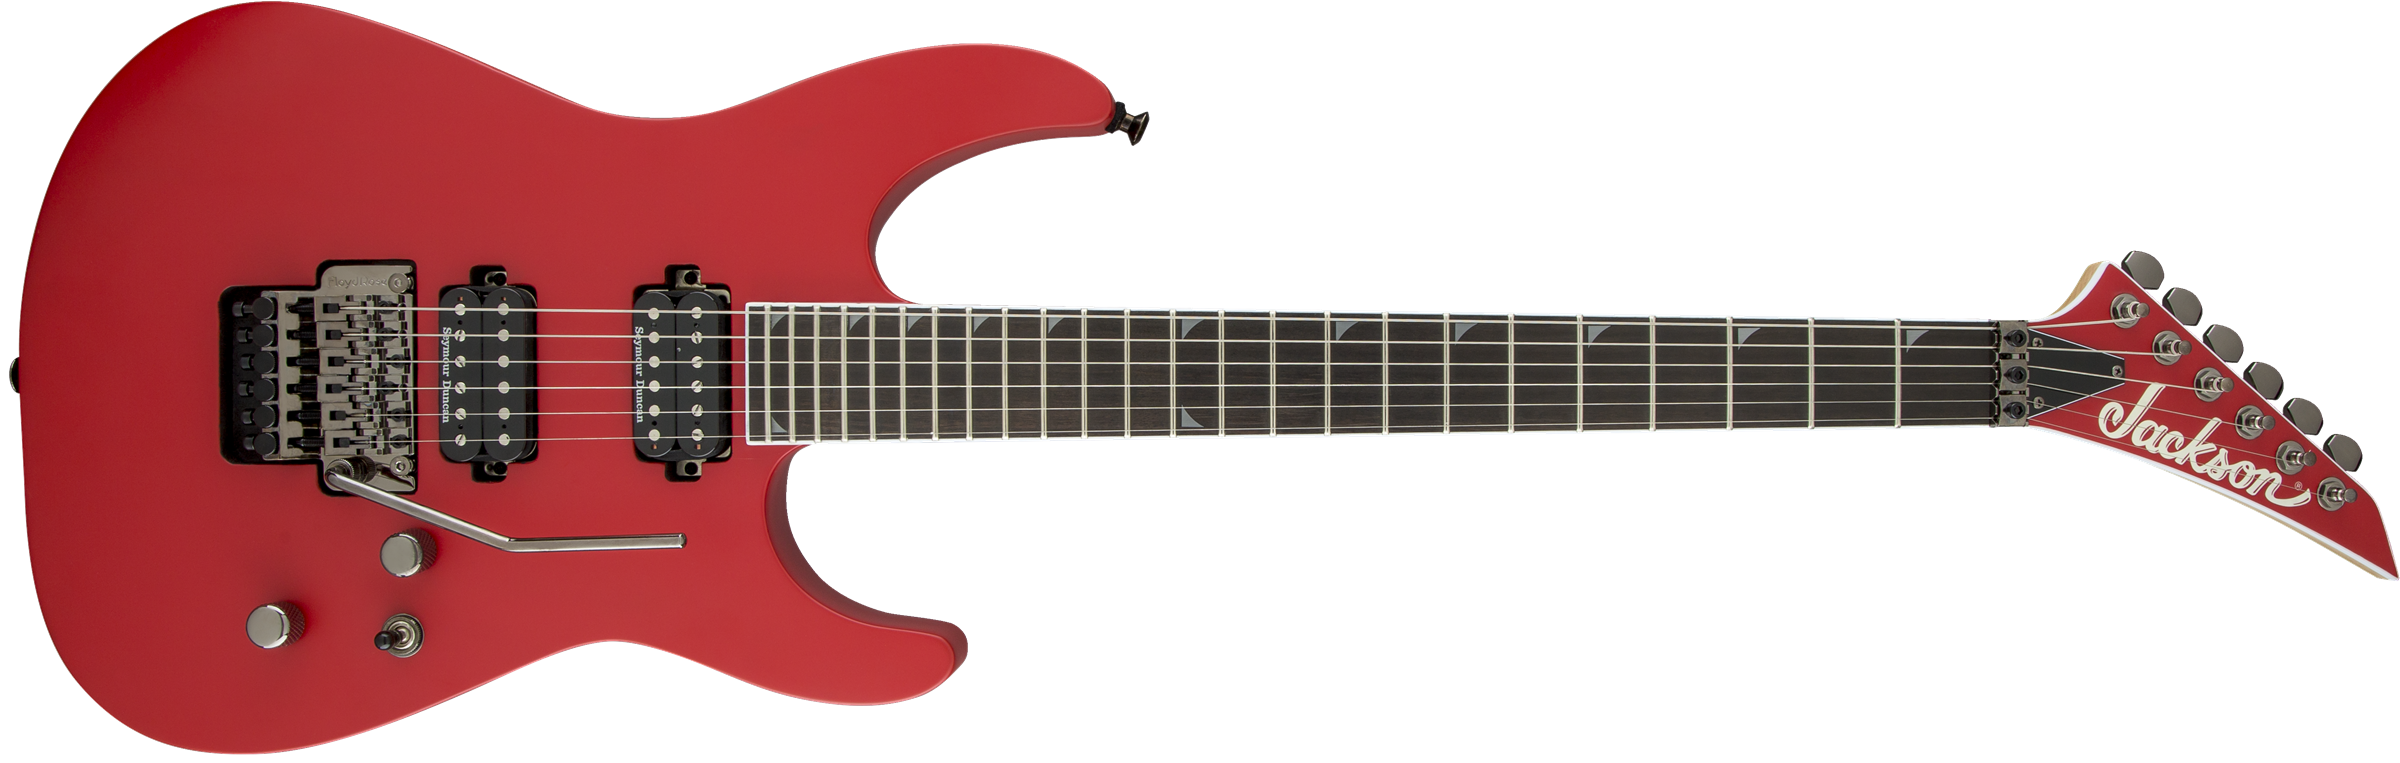 2914222539_gtr_frt_001_rr guitars pro series soloist™ sl2, ebony fingerboard, satin red  at gsmportal.co